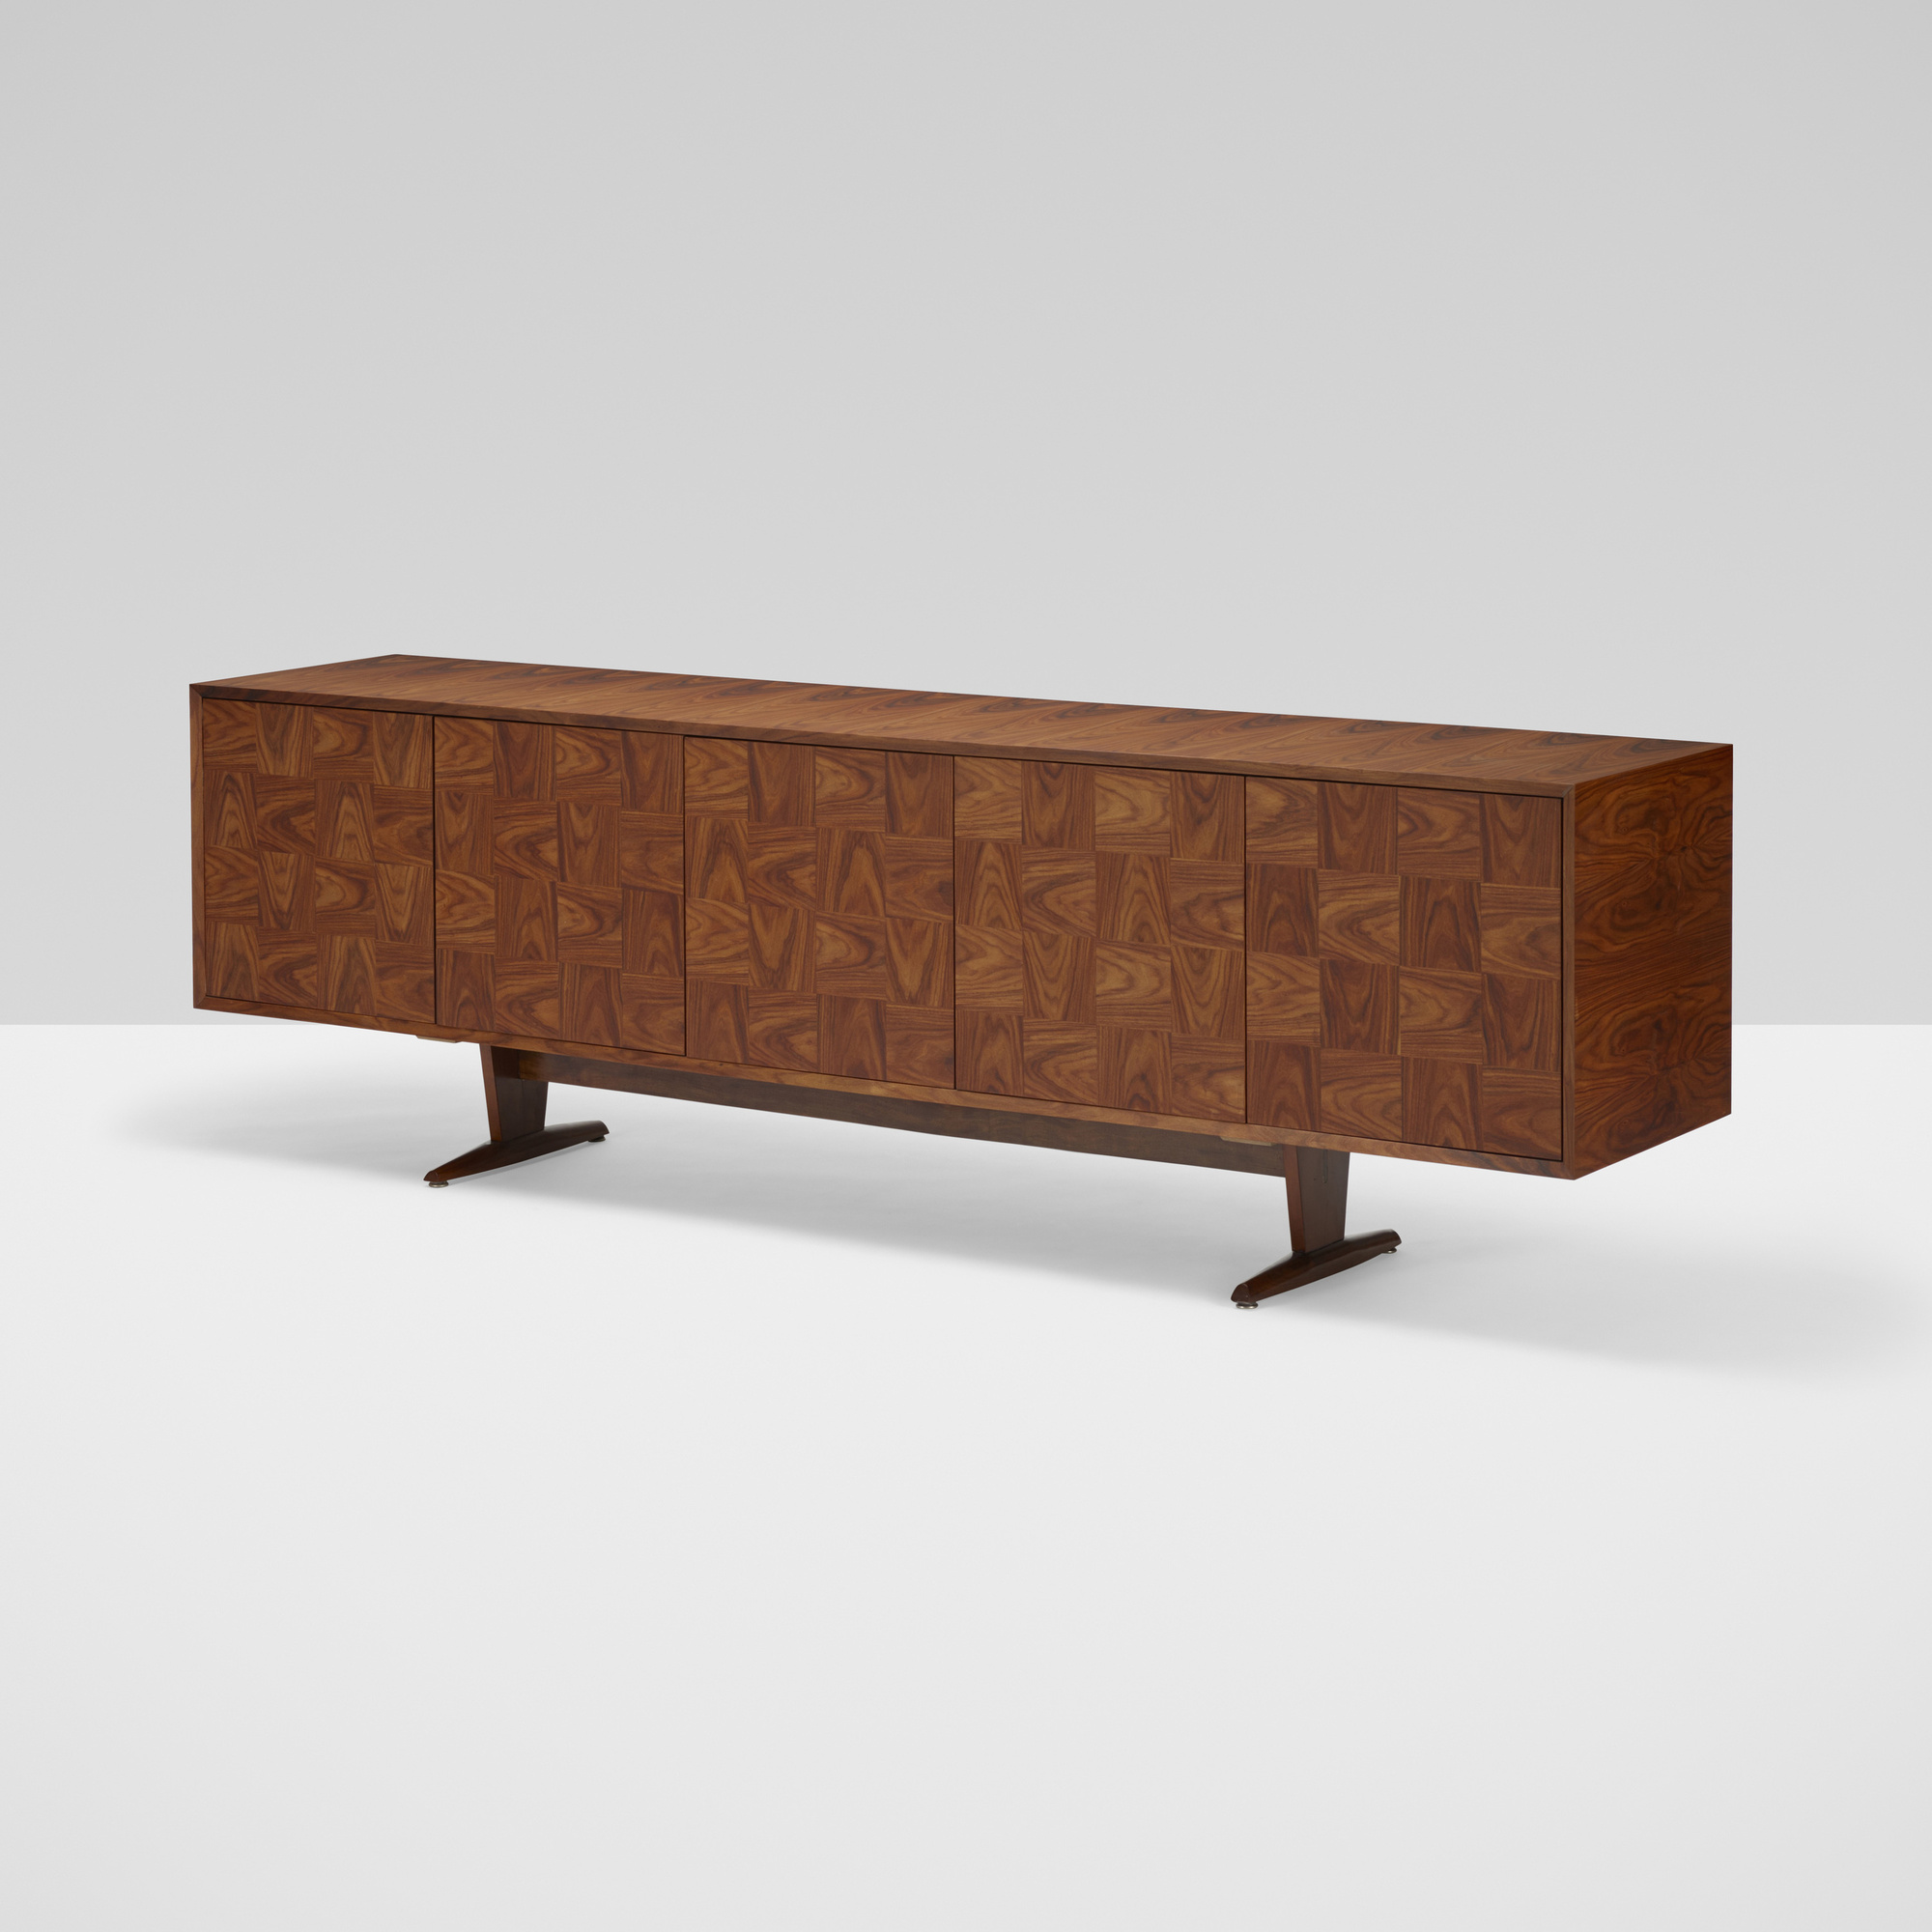 228: Giuseppe Scapinelli / cabinet (2 of 4)